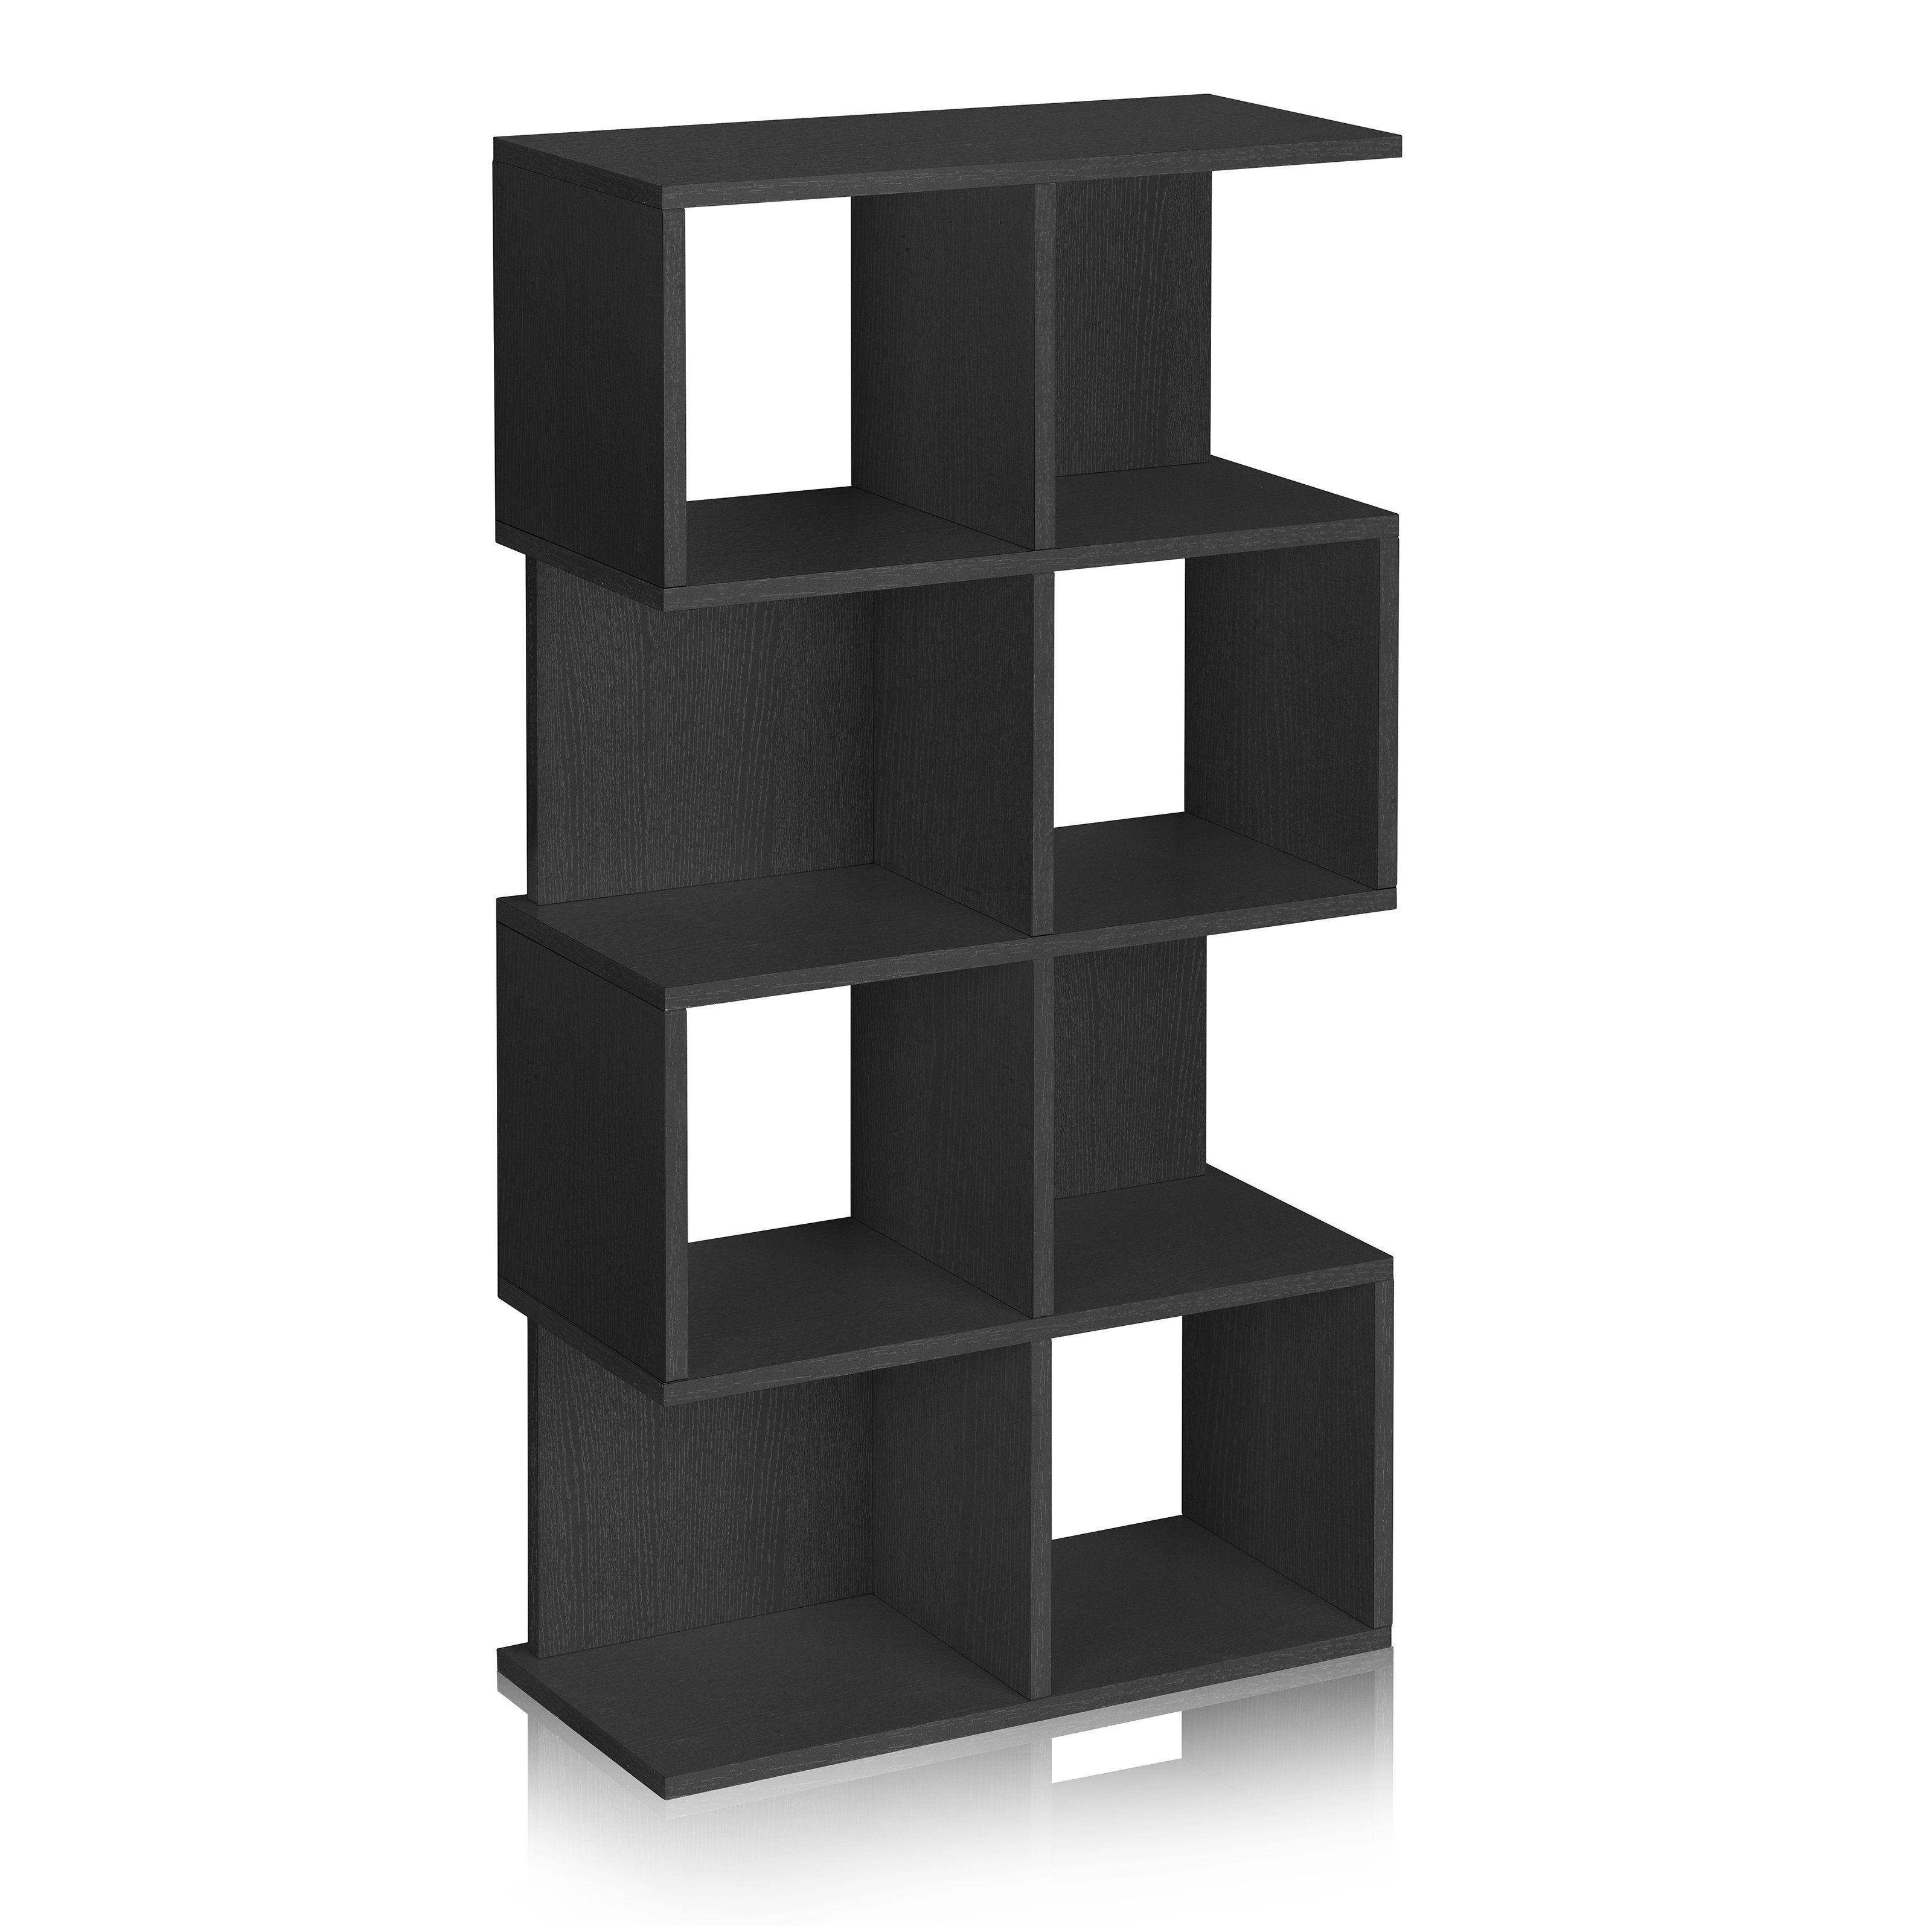 room divider cool ideas as shelf by bookcases bookcase bookshelf black shelves cubices livingroom tall expedit dividers container with wooden open